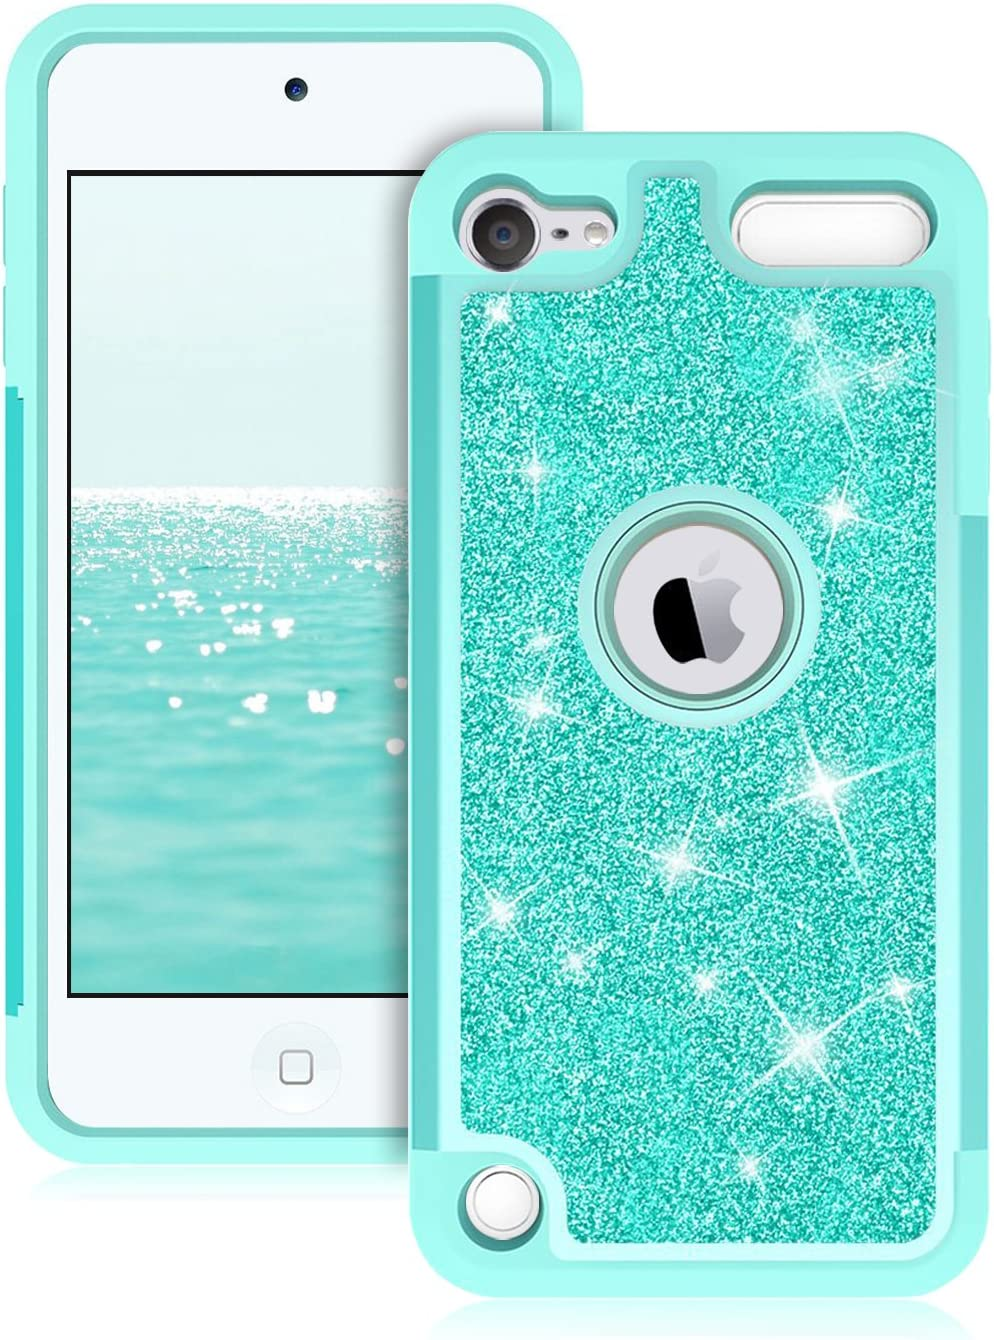 Dailylux Case for iPod Touch 5/6 / 7th Generation, Dual Layer Heavy Duty Protective Case High Impact Bumper Cover for Apple iPod Touch 5, iPod Touch 6, iPod Touch 7, Glitter Green